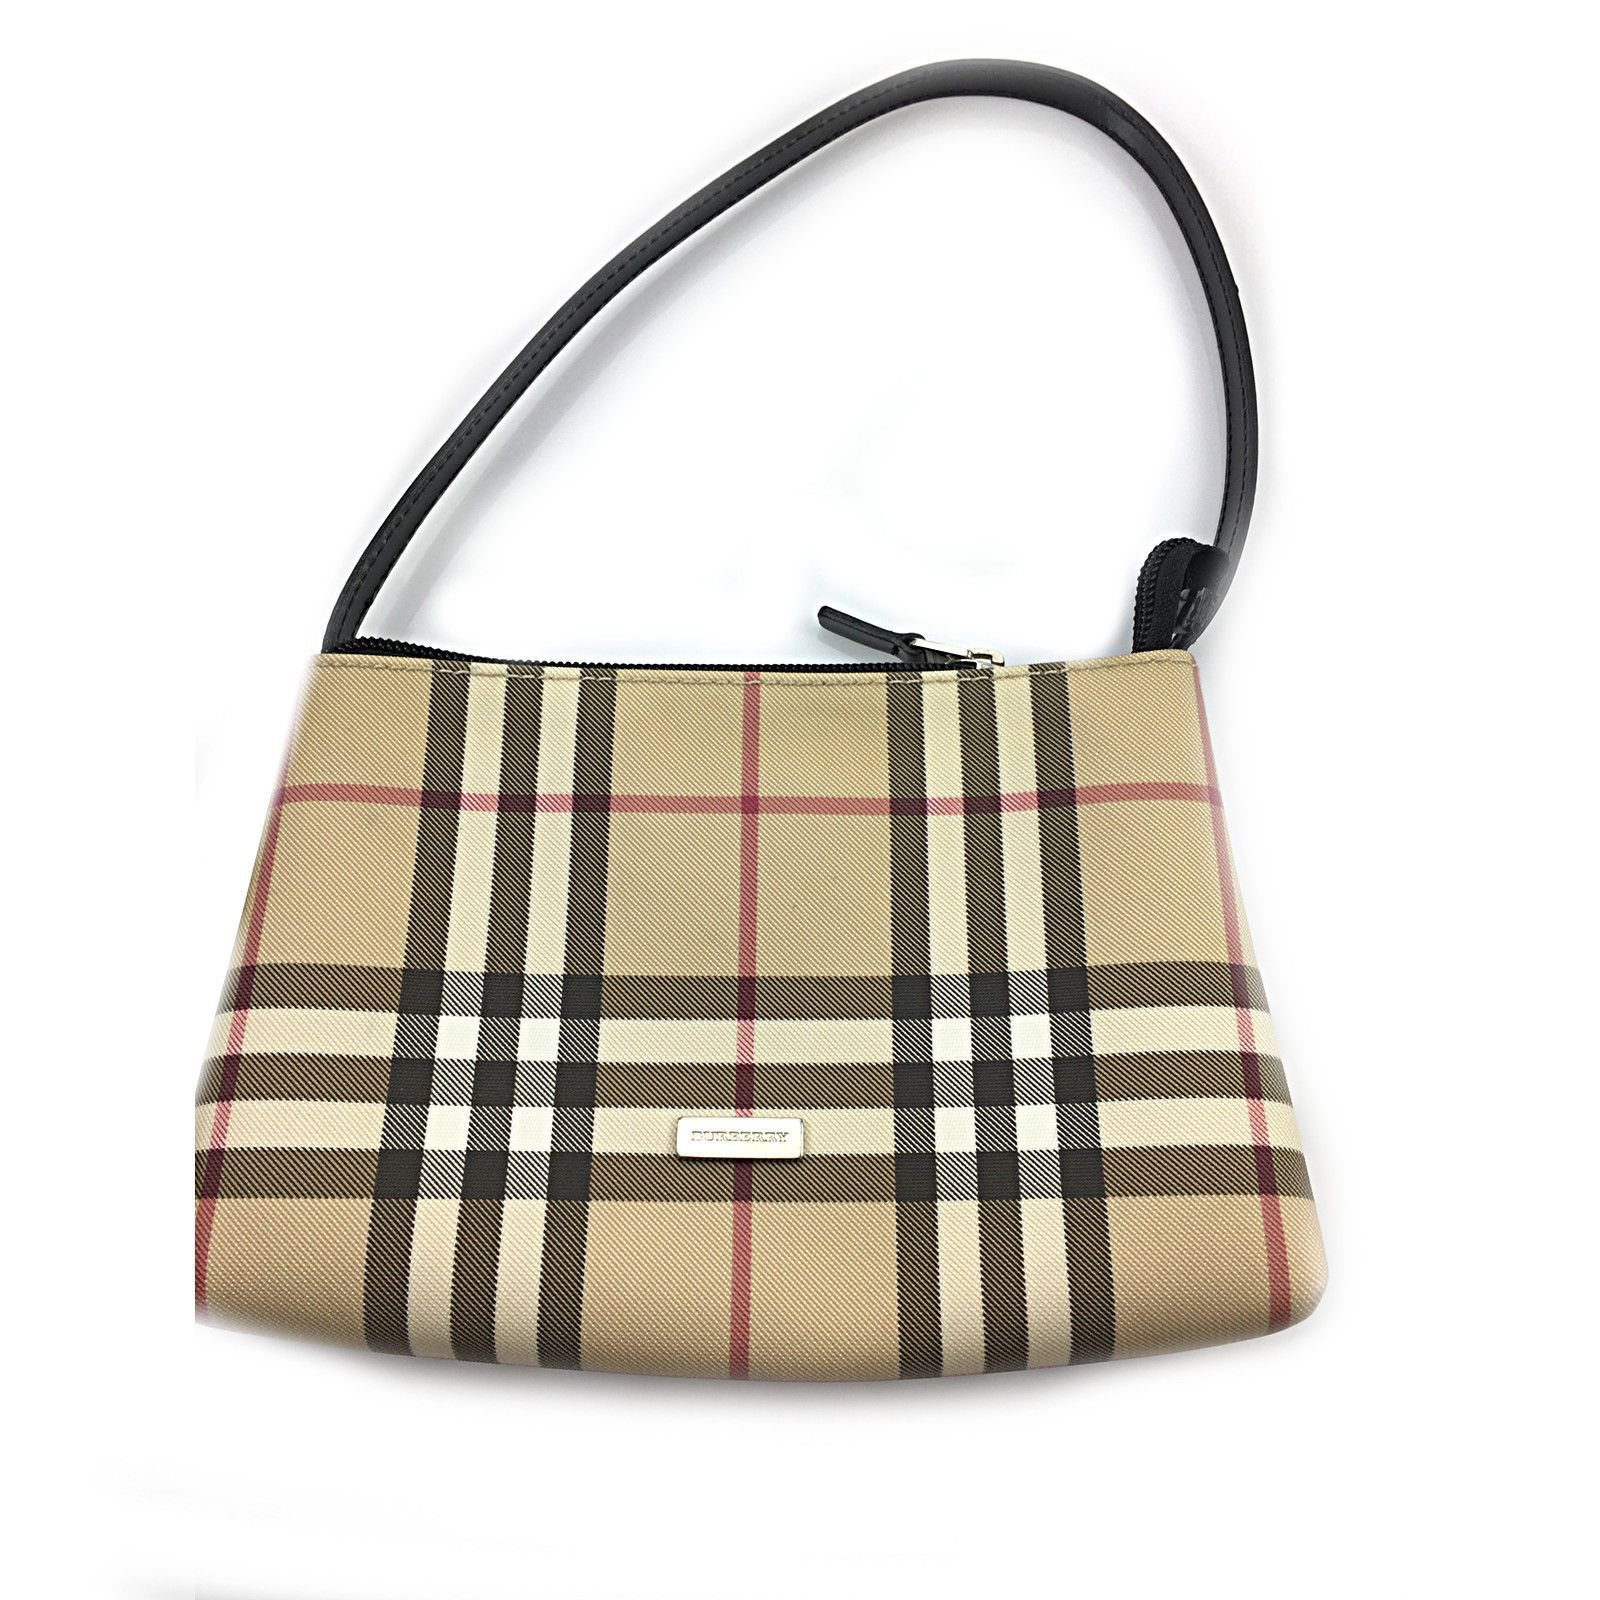 Authentic Burberry Purse Gently Used